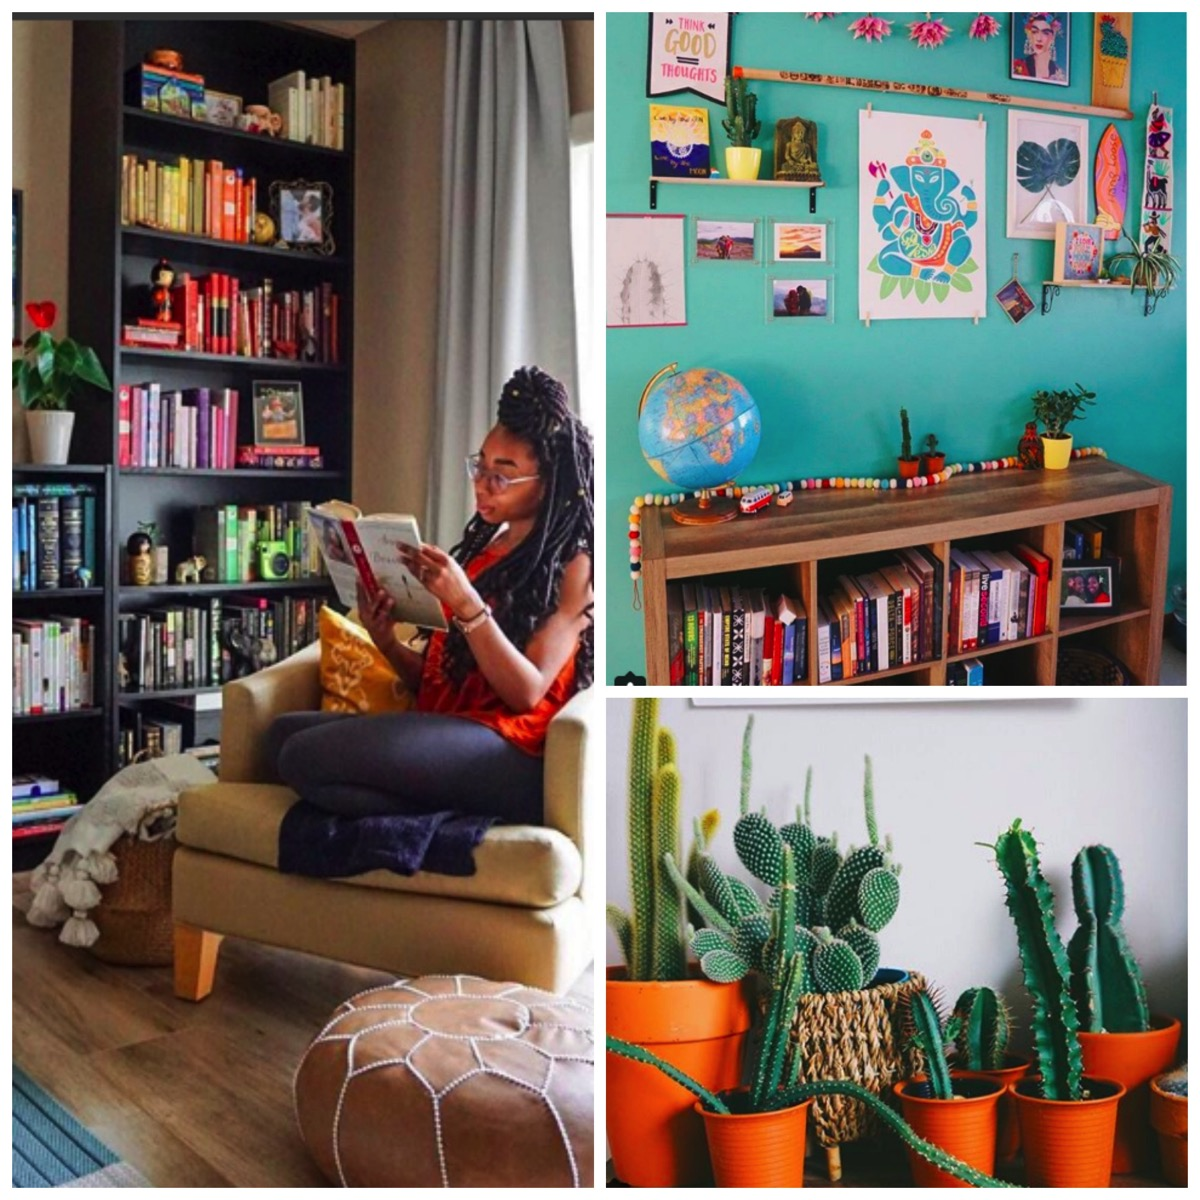 Home Tour: The Whimsical, Colorful Plant Filled Bungalow of Antonia in Japan